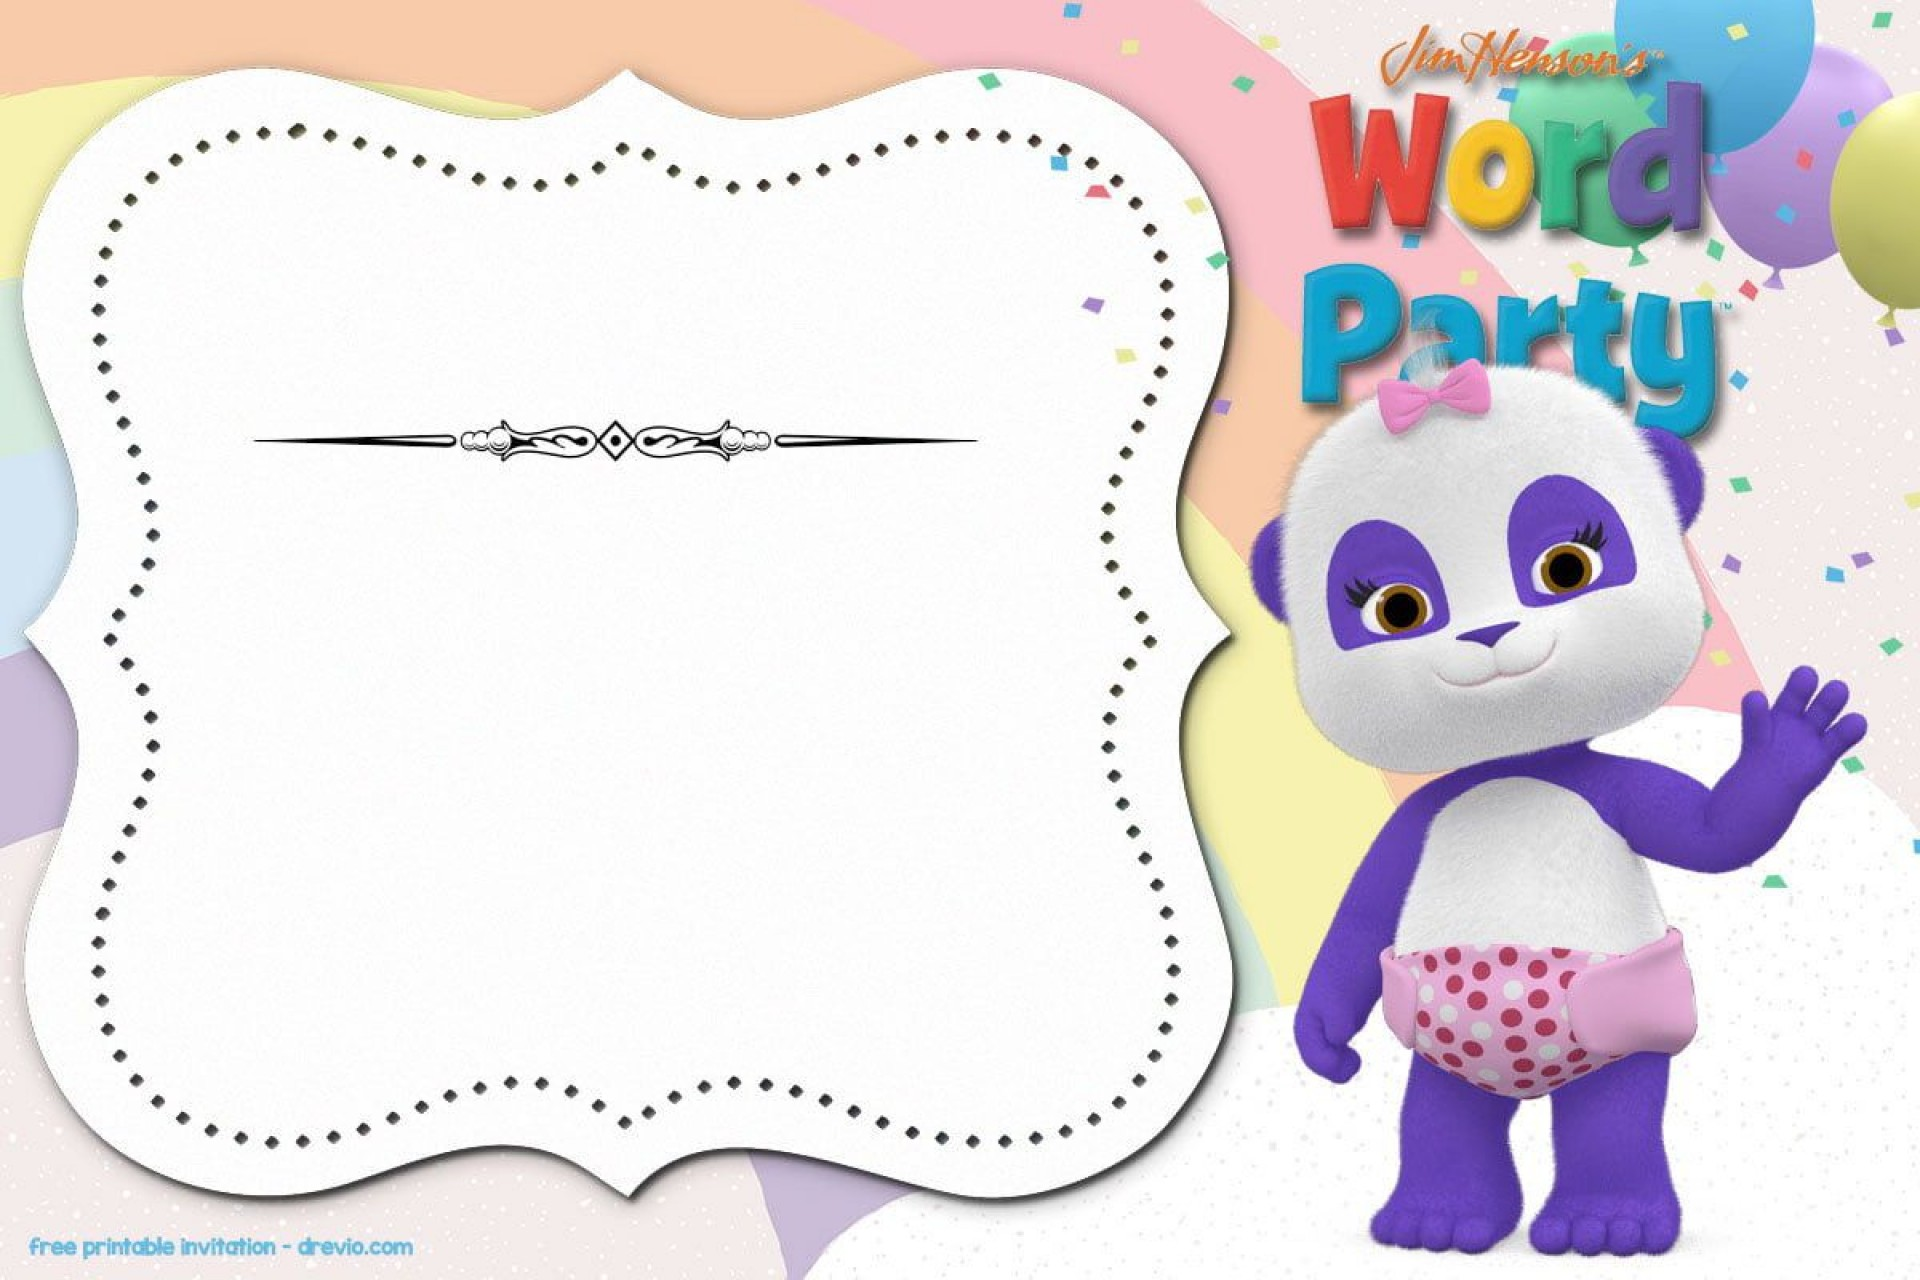 006 Stunning Free Birthday Party Invitation Template For Word High Definition 1920